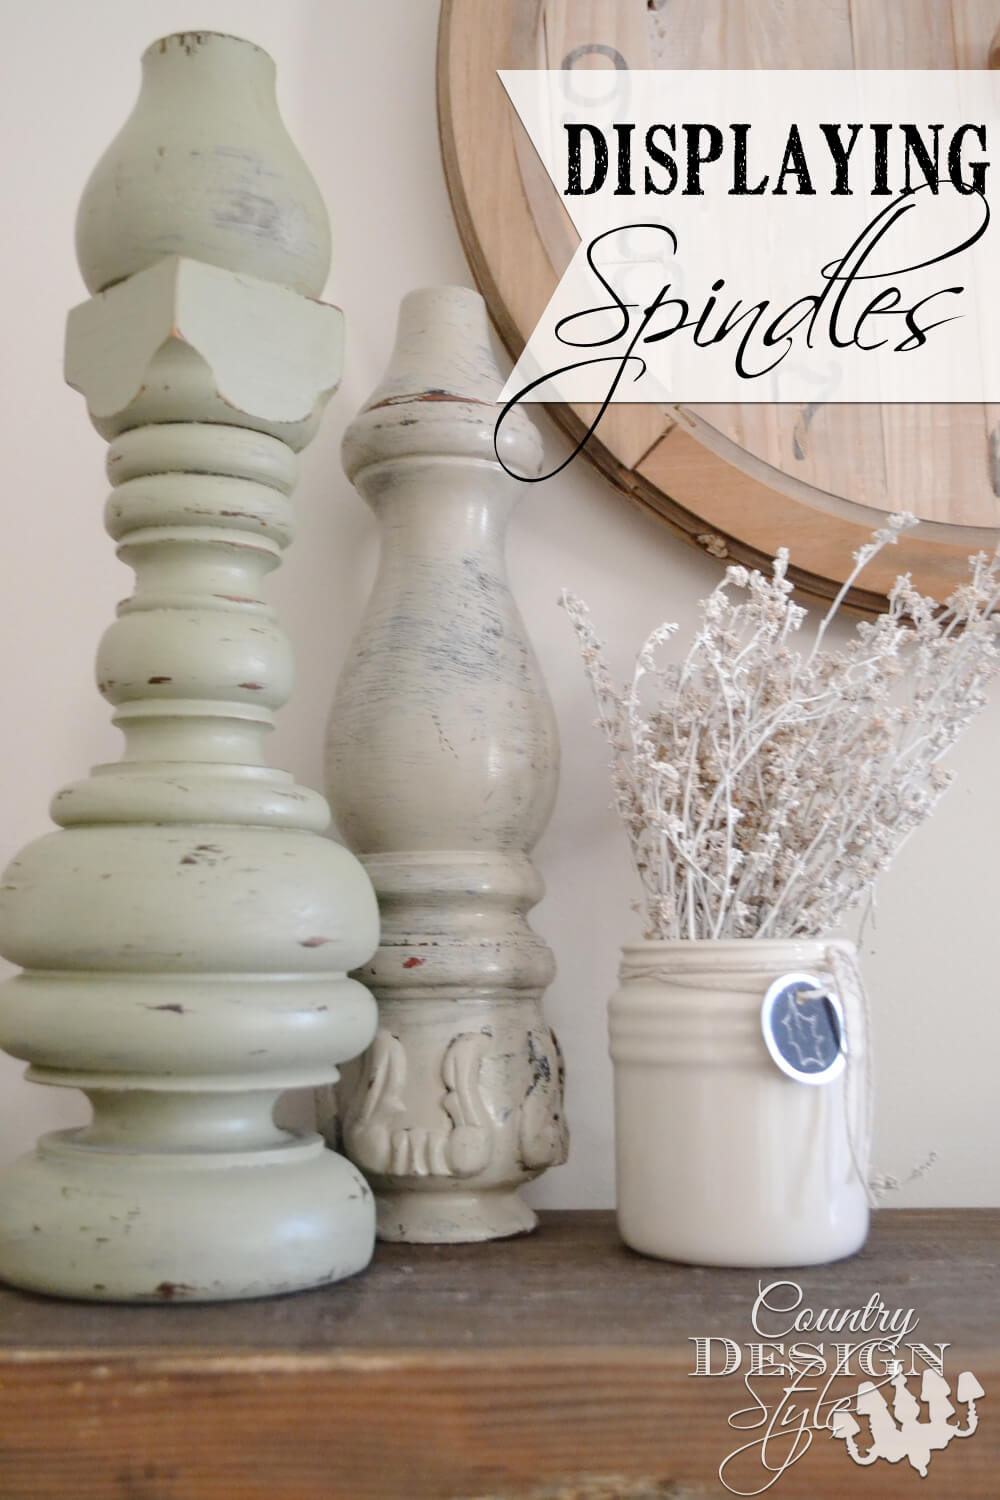 36 Best Reused Spindle Ideas And Designs For 2019